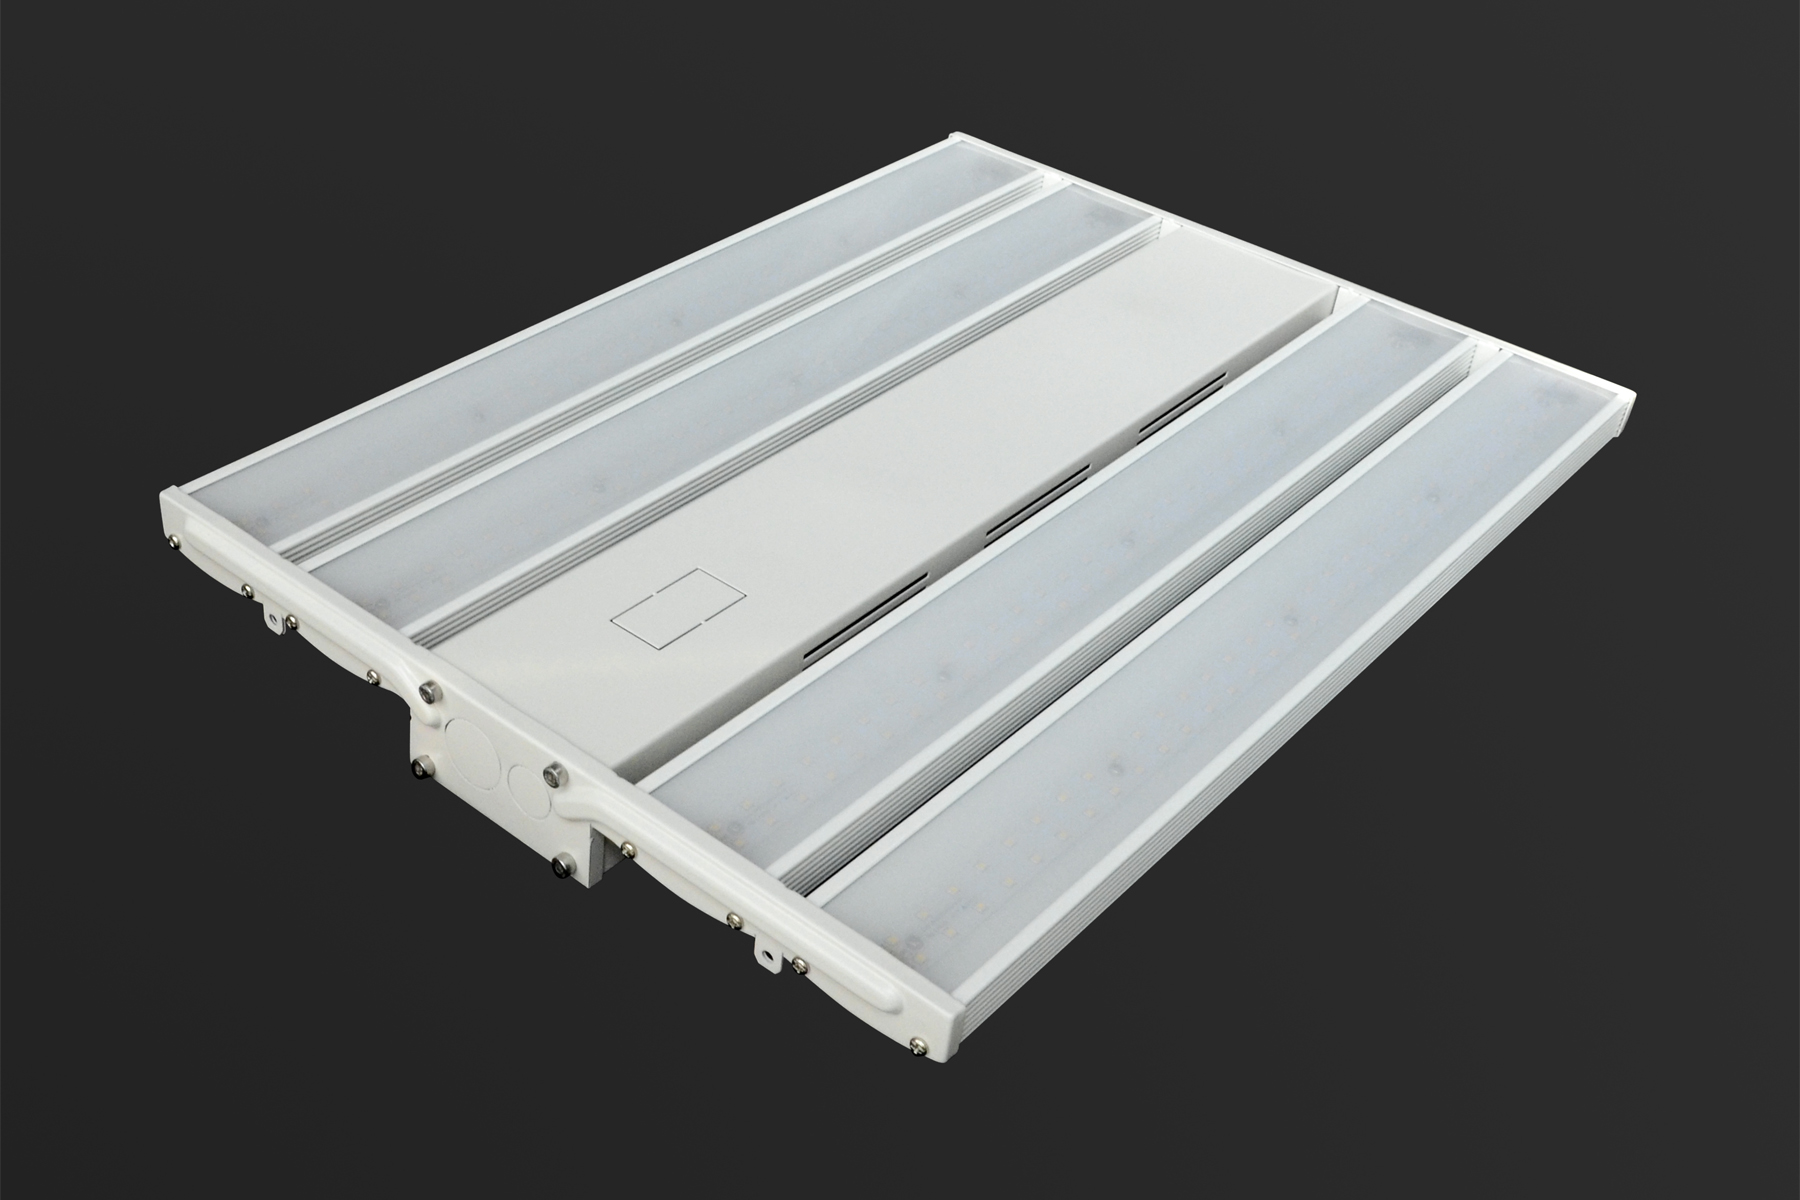 LED Linear High Bay with Advanced Controls 100W - 300W Models